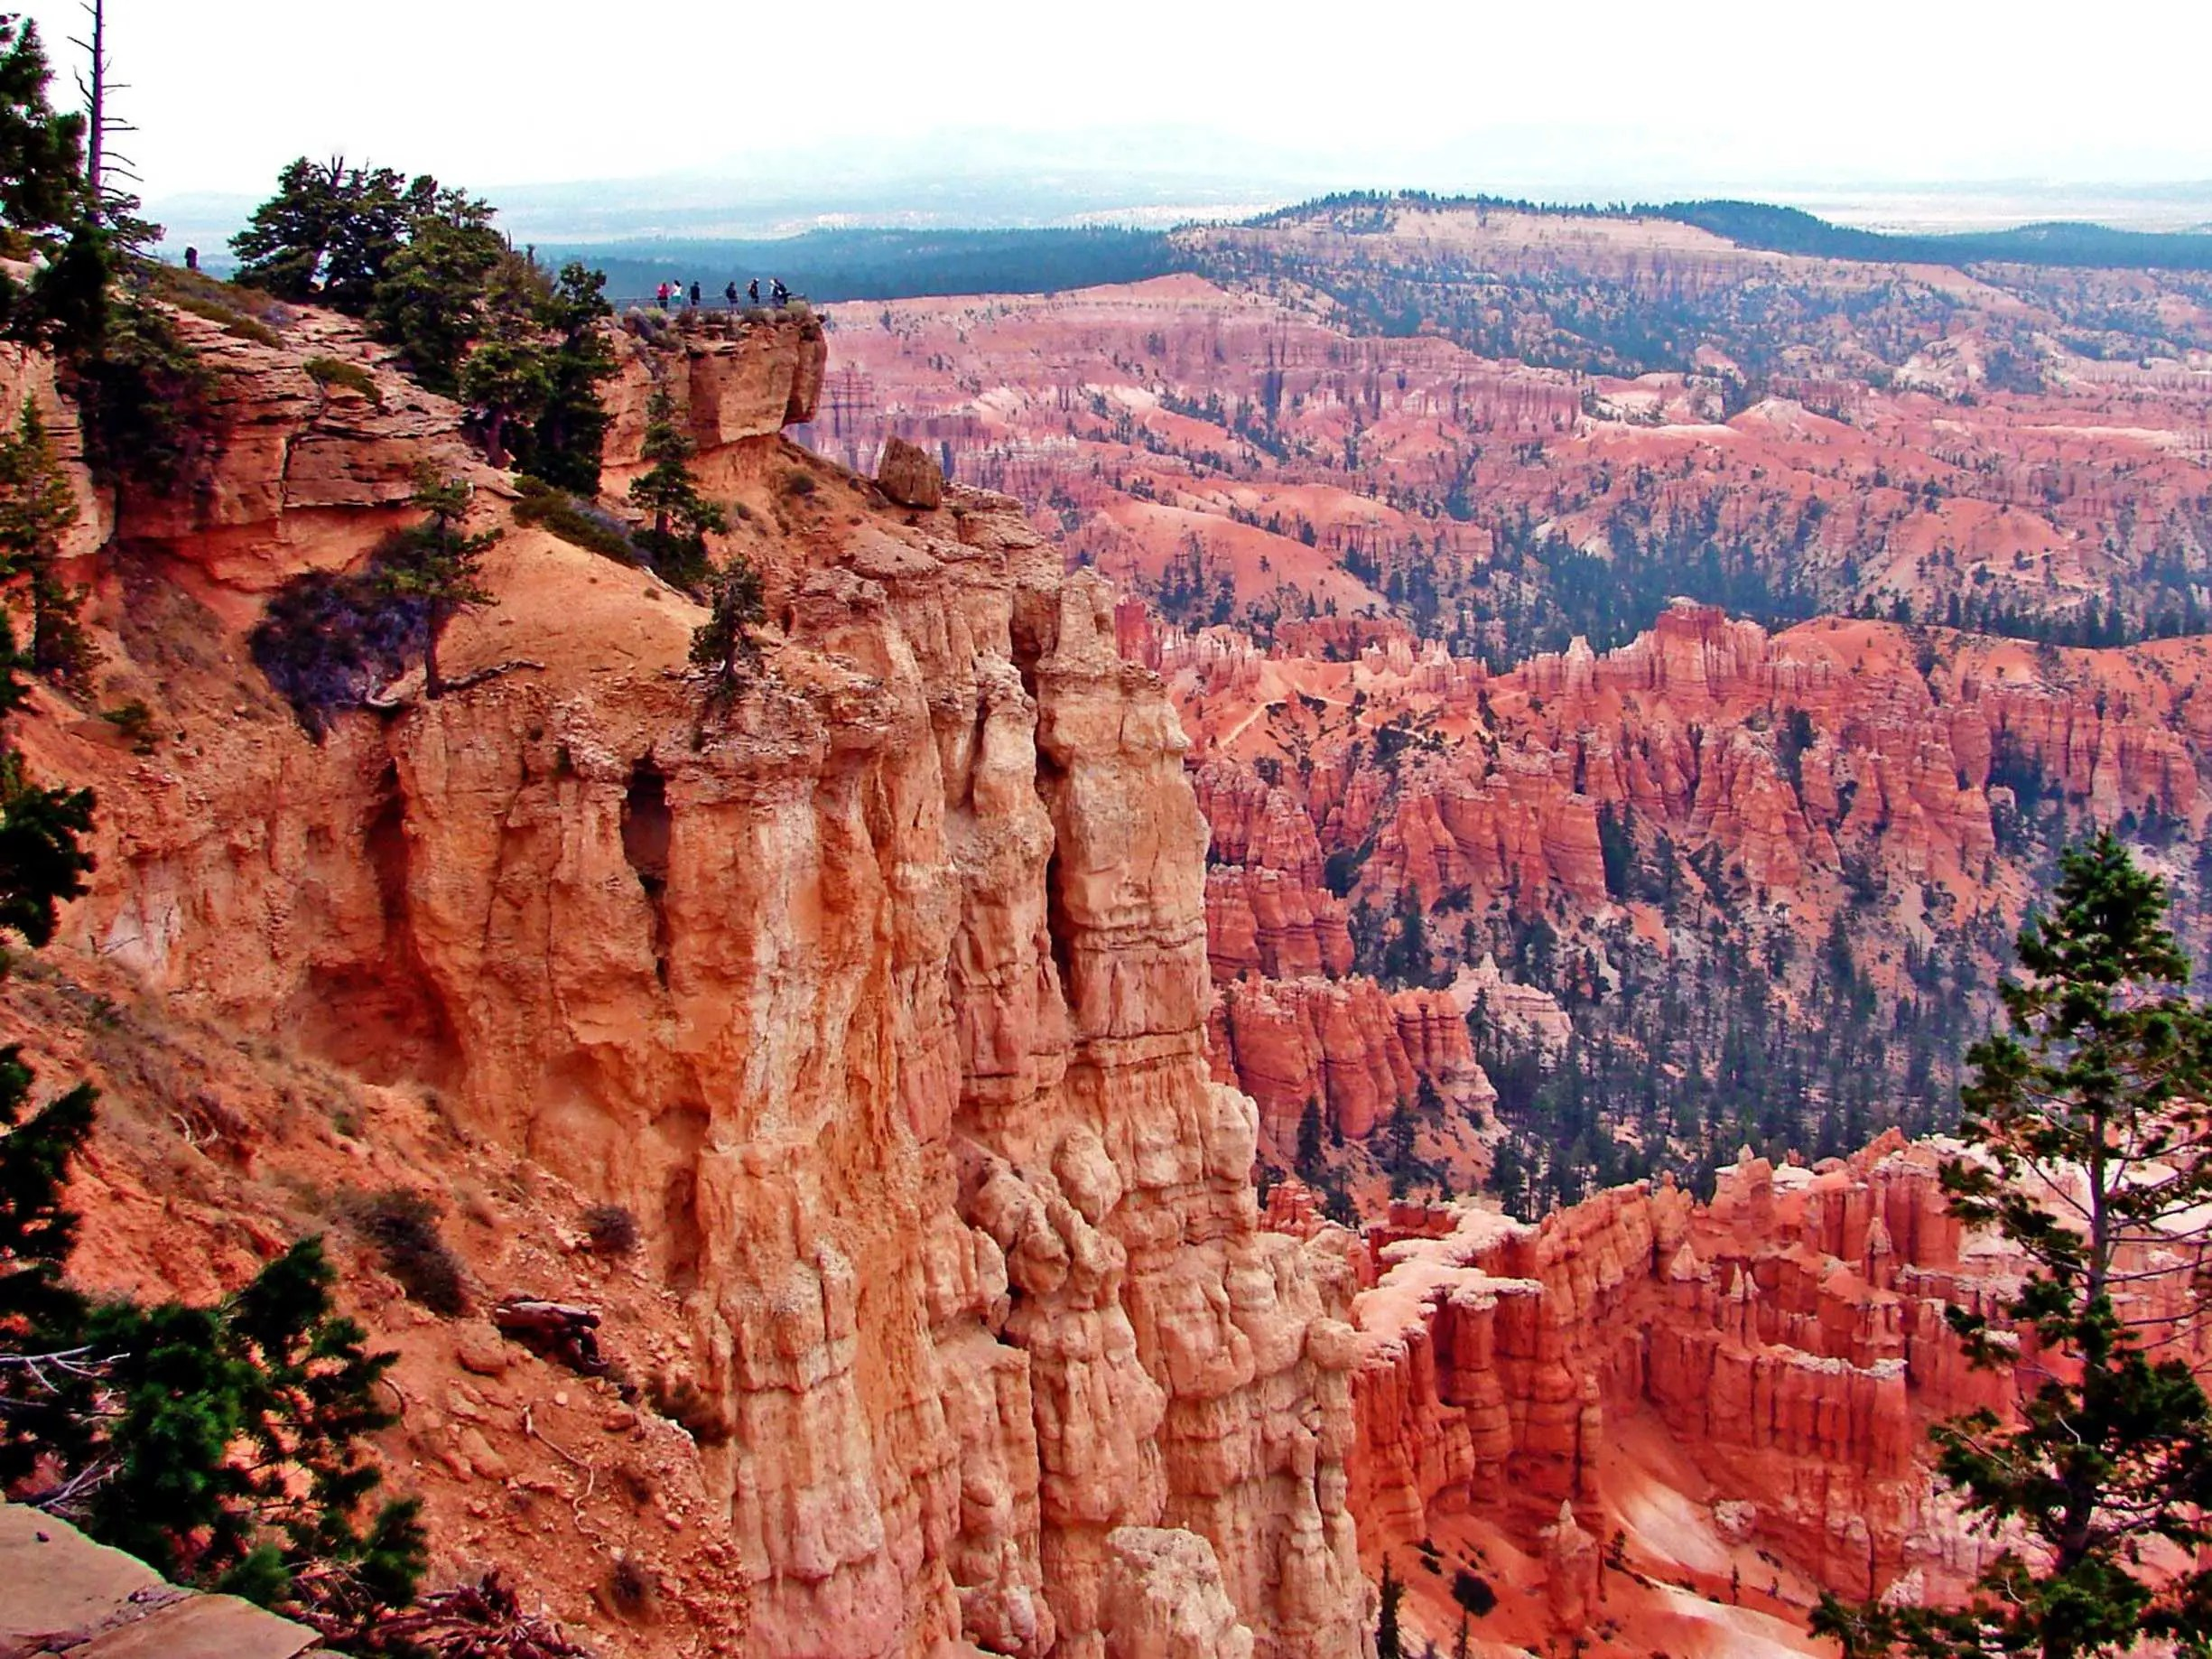 Trek up to Rainbow Point, the highest part of the Bryce Canyon National Park in Utah at 9,105 feet, to see stunning views of the Aquarius Plateu, Bryce Ampitheater, the Henry Mountains, the Vermillion Cliffs, and the White Cliffs.